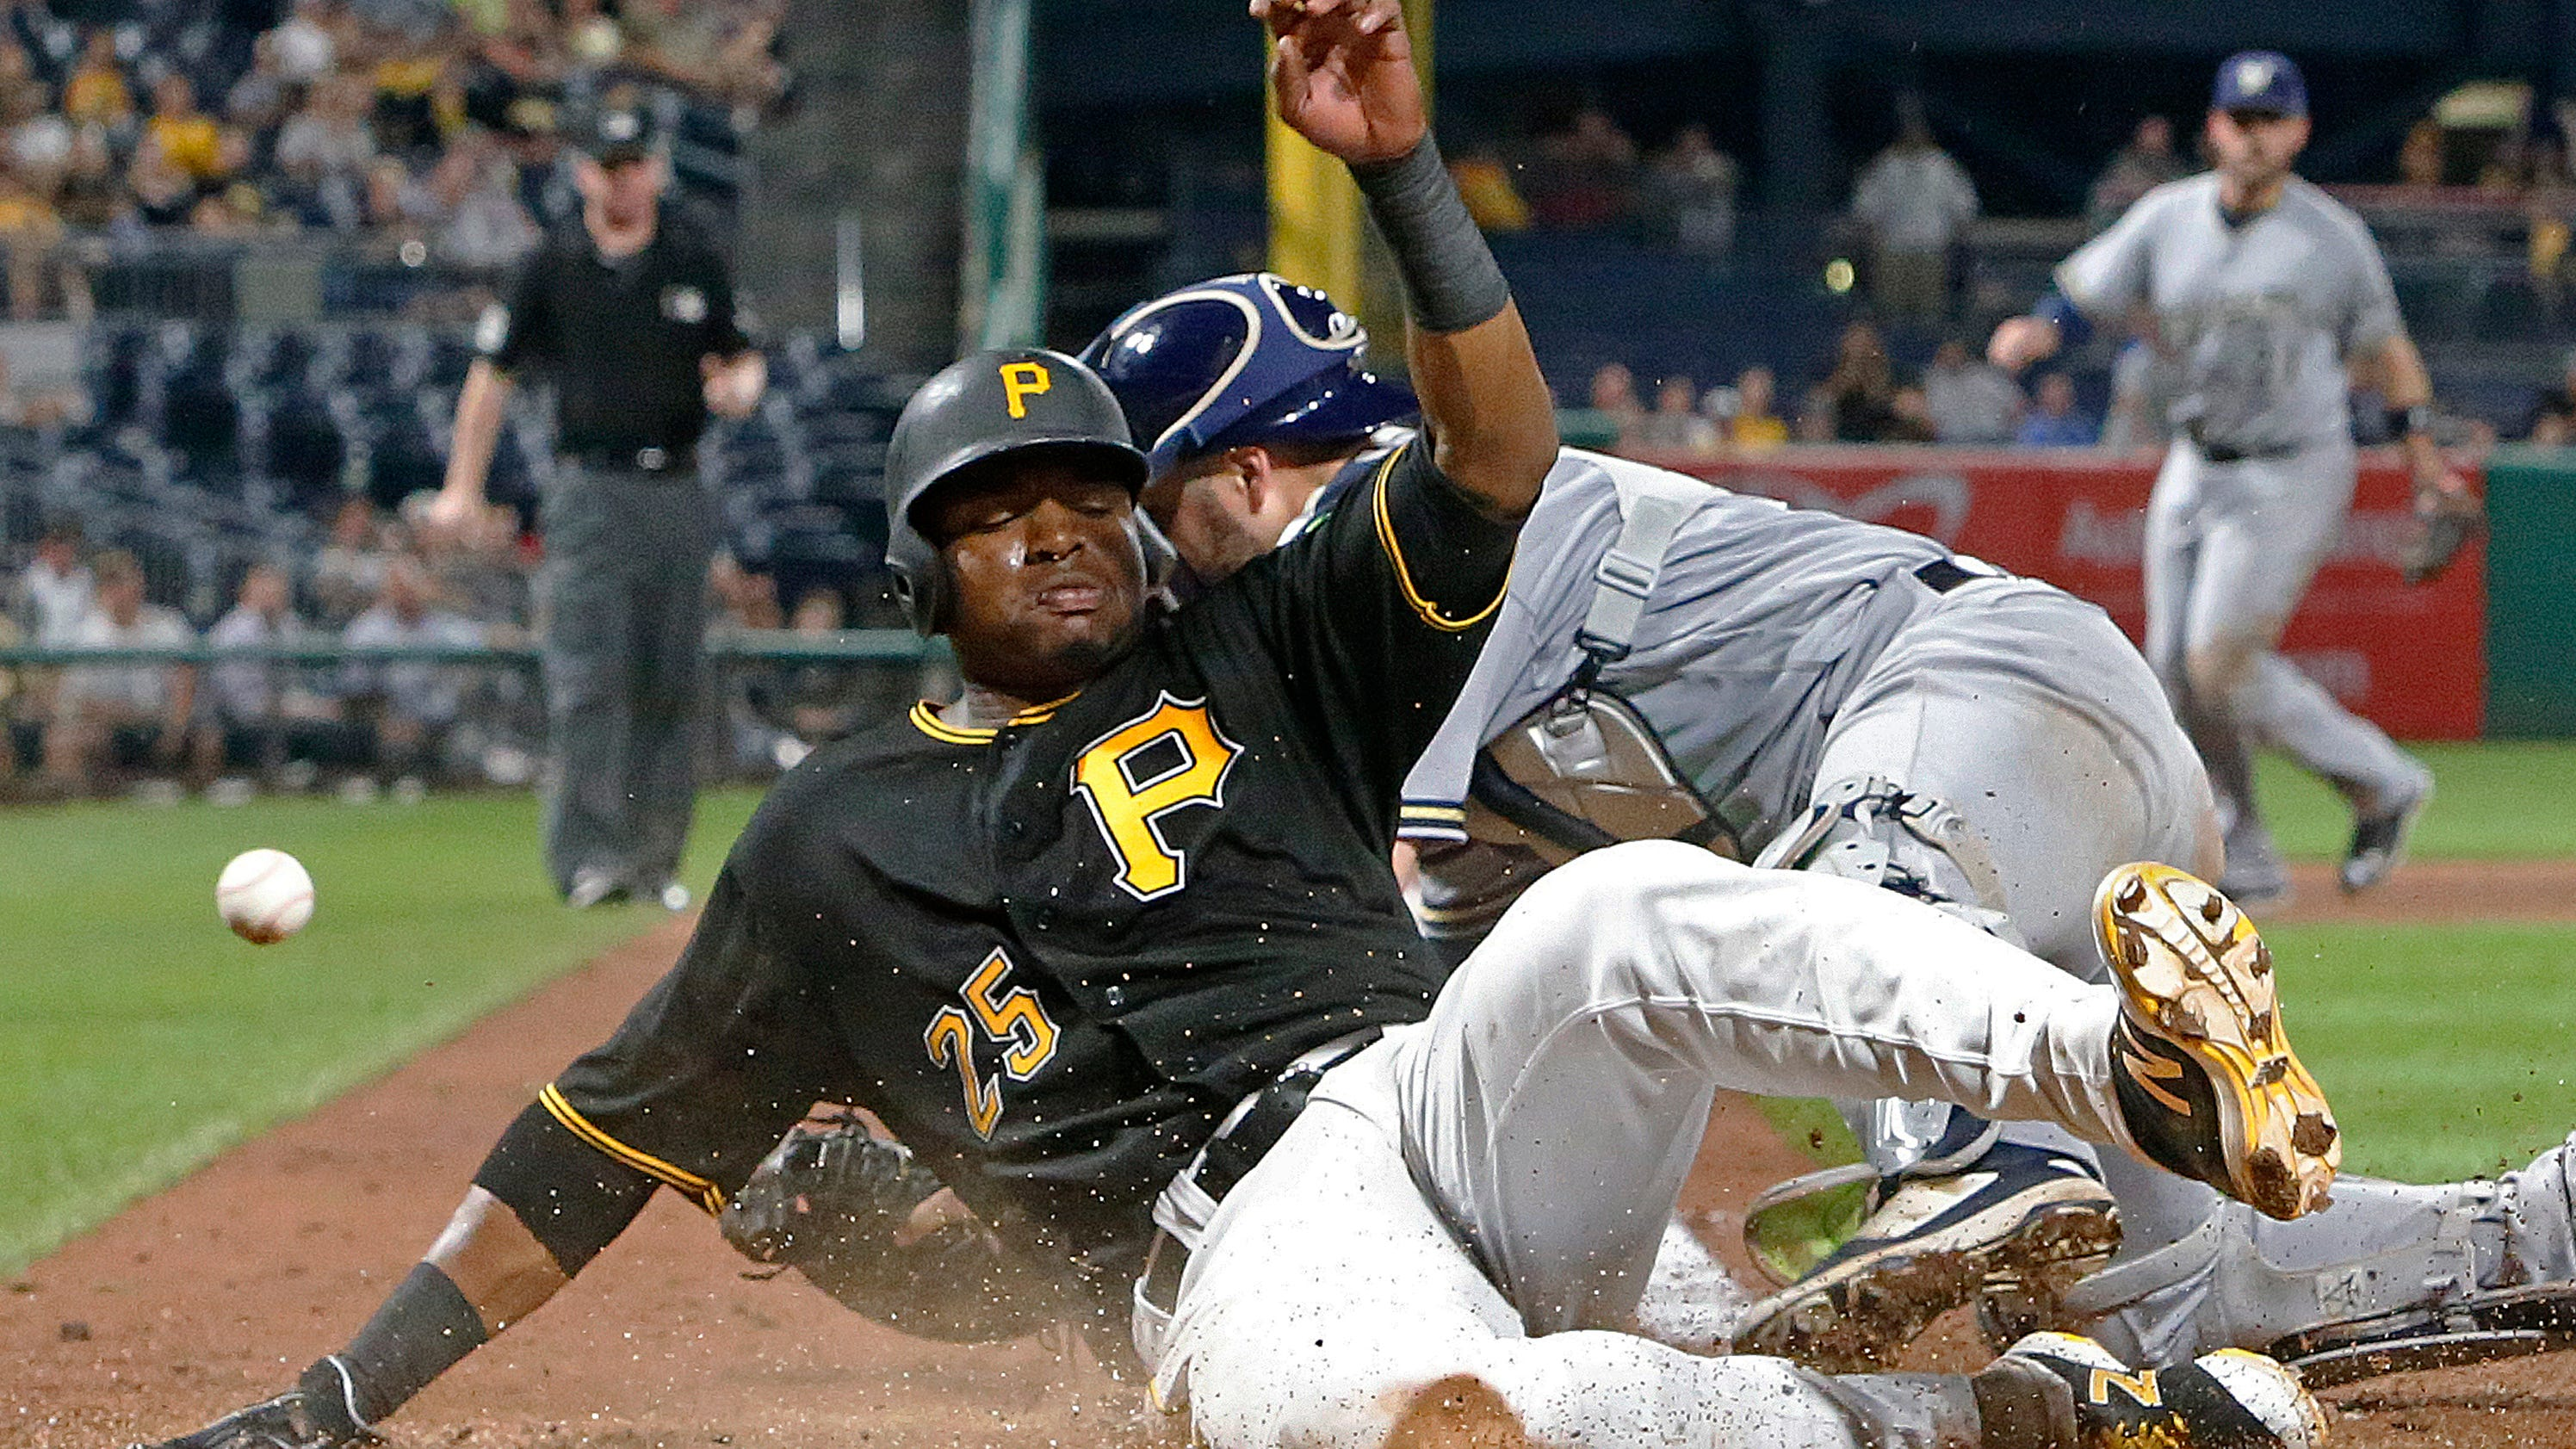 Polanco goes 4 for 4, Pirates top Brewers 4-2